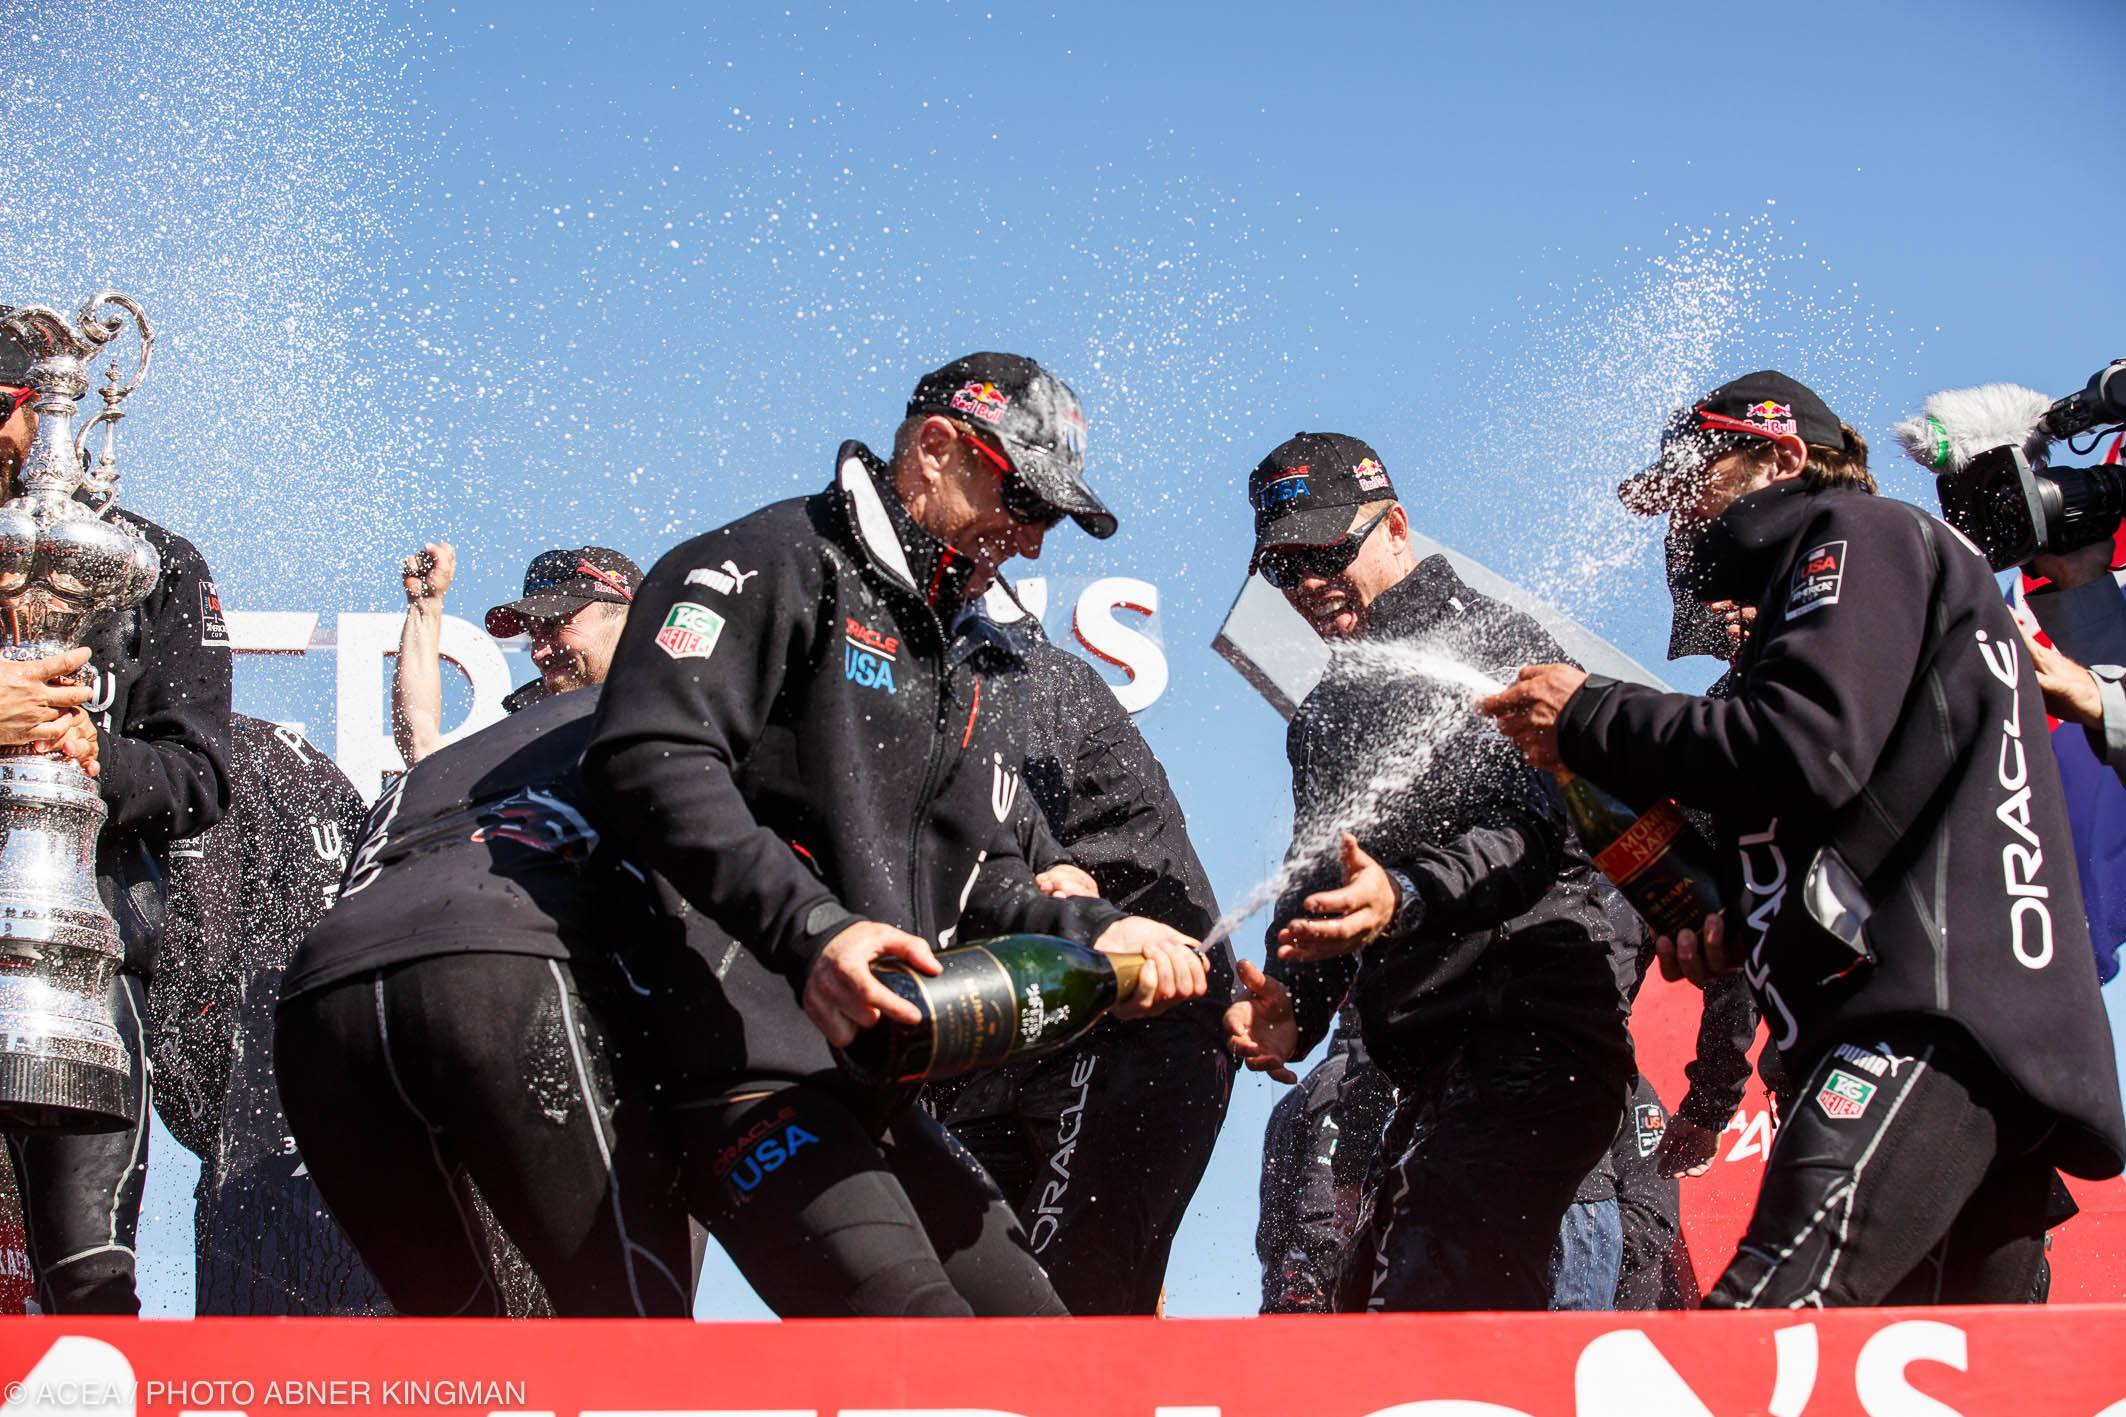 - San Francisco (USA CA) - 34th America's Cup - Final Match Day 15, ORACLE Team USA vs Emirates Team New Zealand